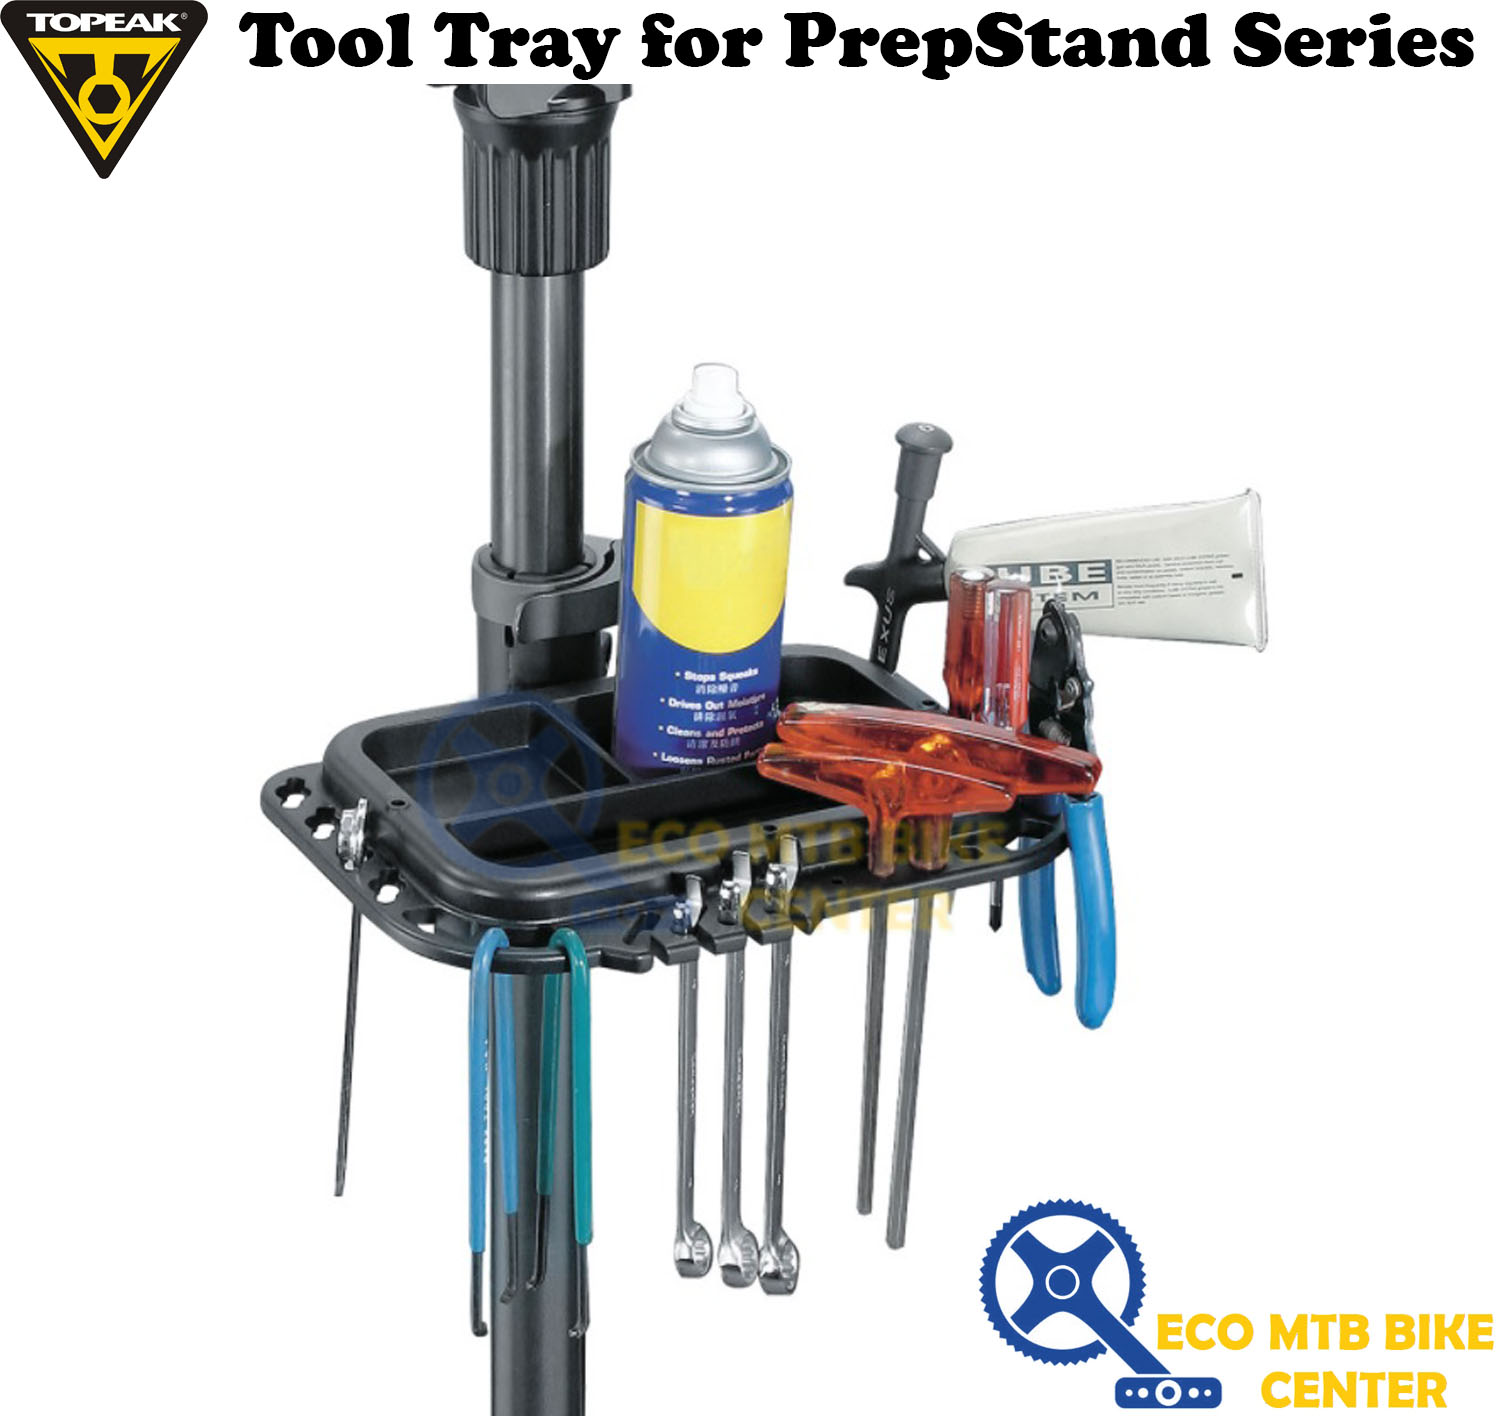 TOPEAK Tool Tray for PrepStand Series